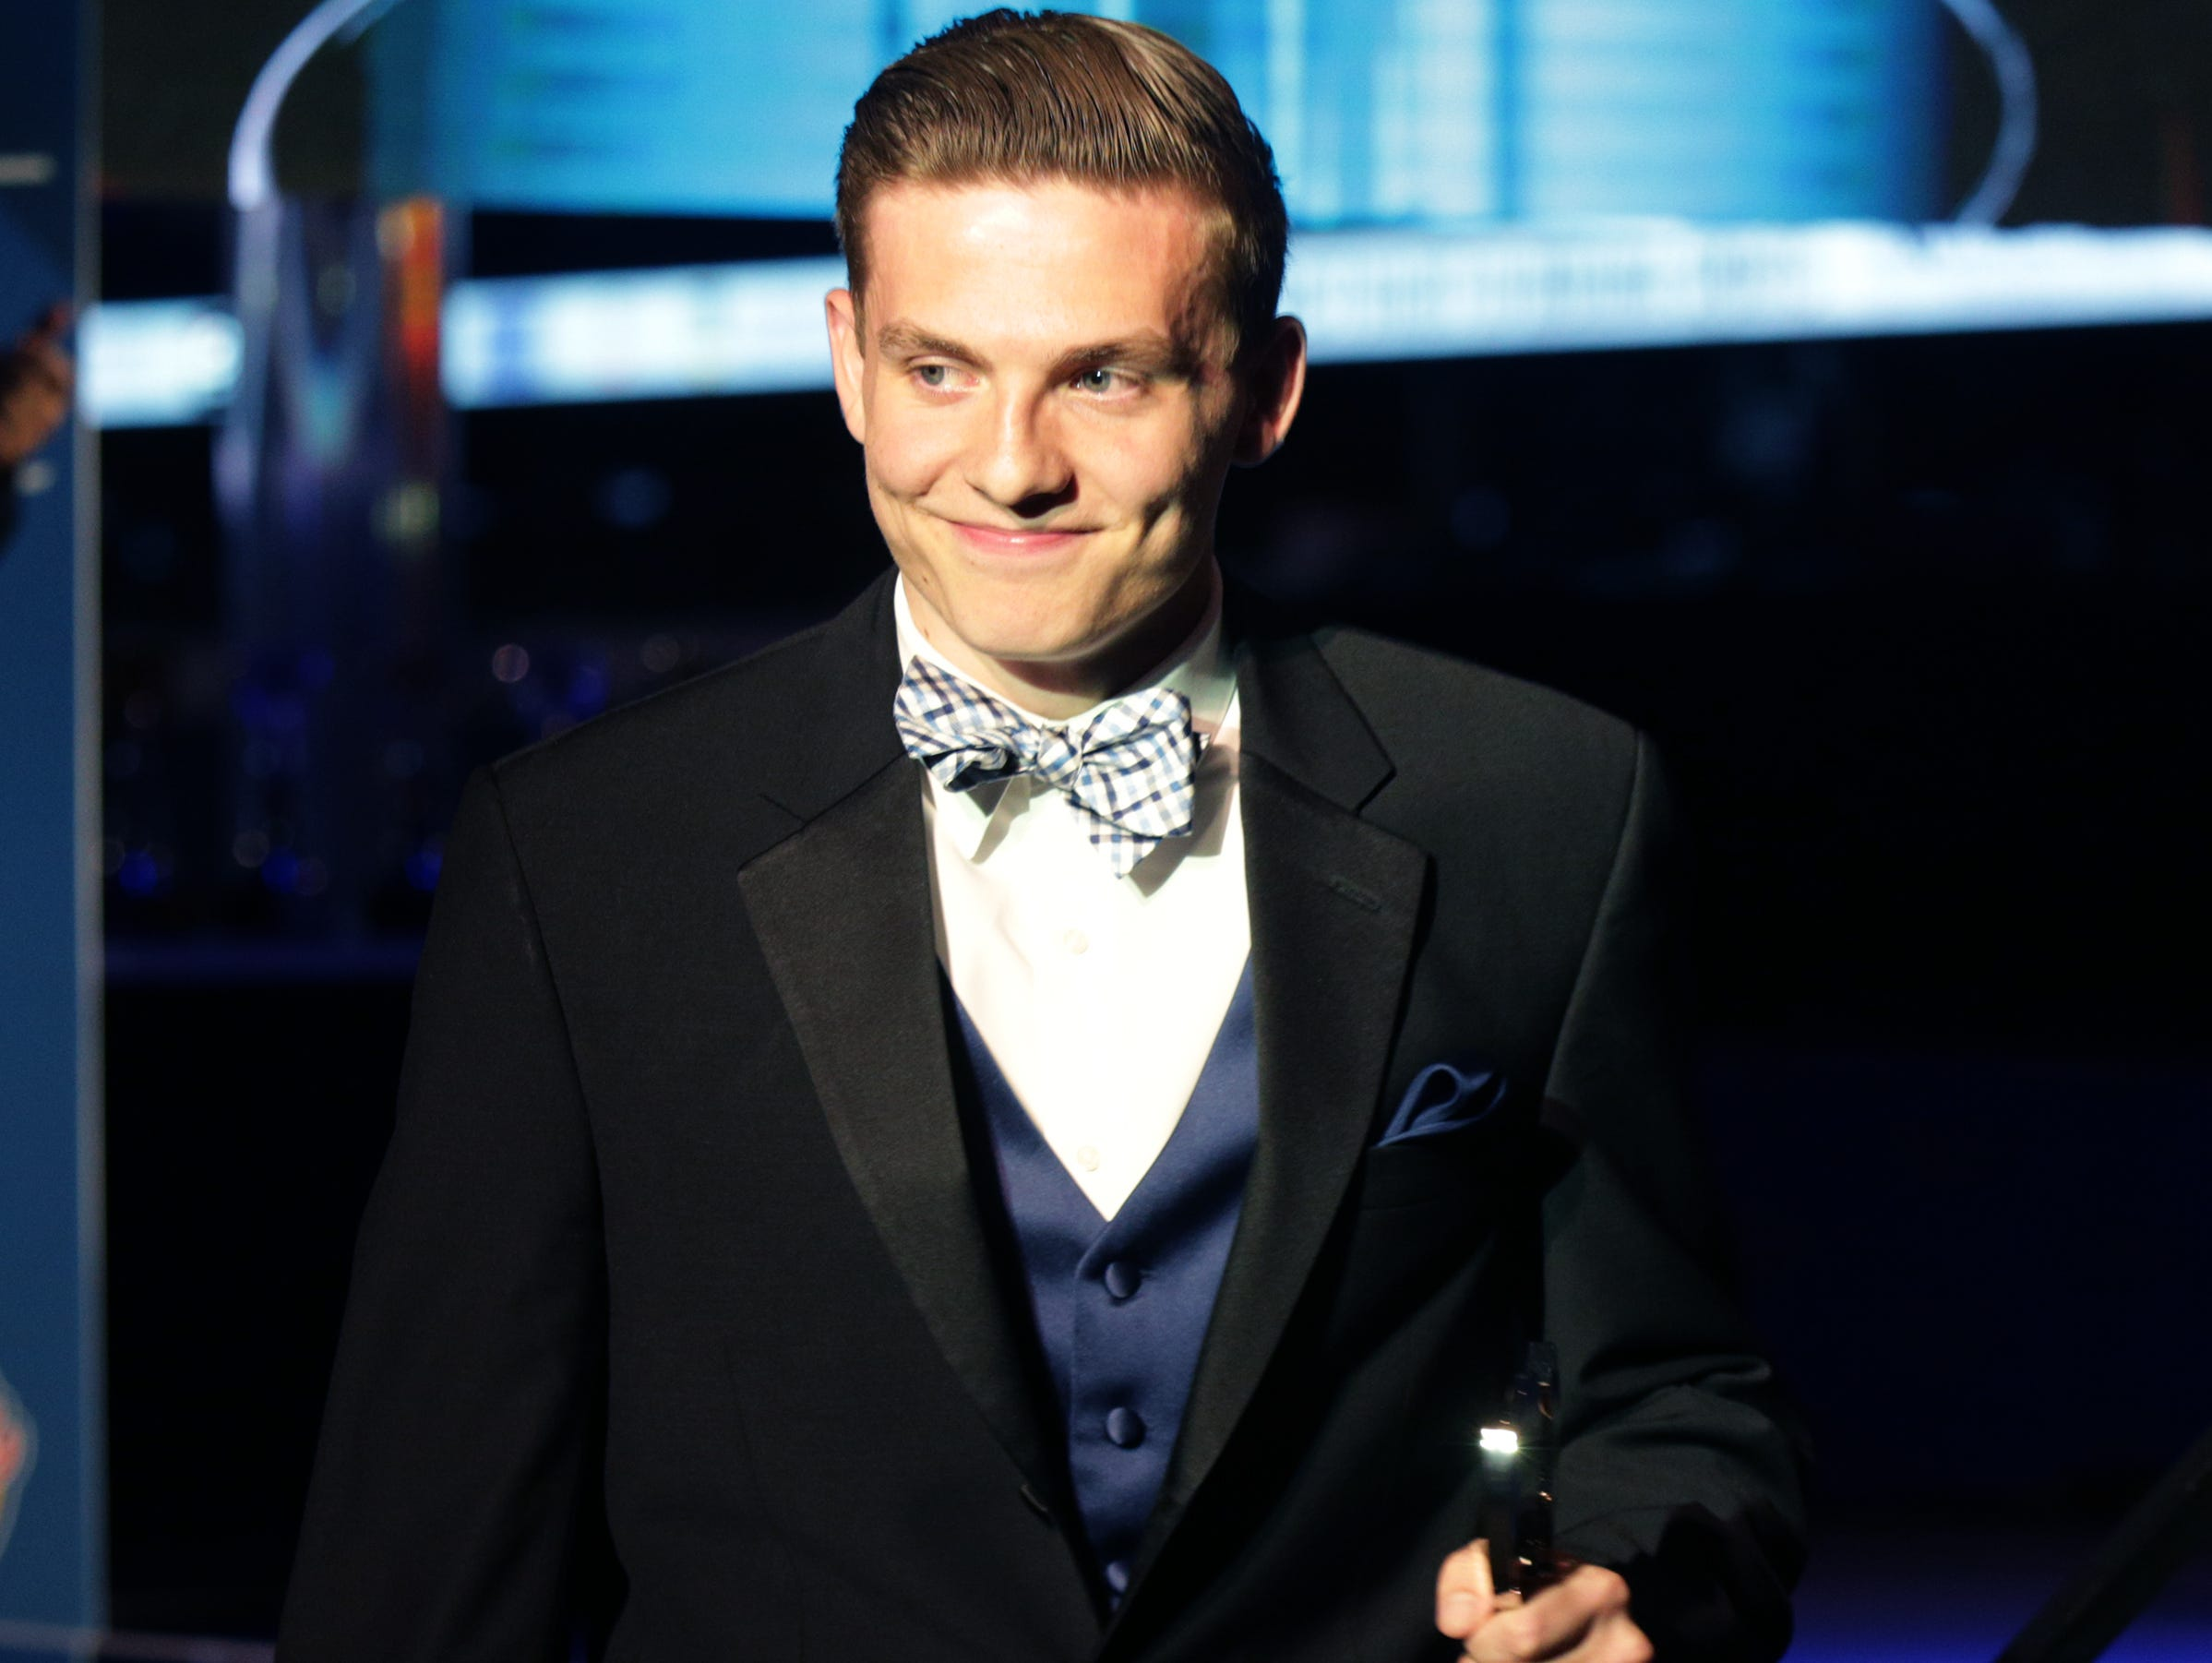 Kyle Guy, of Lawrence Central High School, accepts his award for Mr. Indiana Basketball. IndyStar held the Indiana Sports Awards, Thursday, April 28, 2016 at Lucas Oil Stadium where they honored the outstanding accomplishments of 200+ high school athletes in 28 sports. The featured guest speaker was Indianapolis Colts' quarterback Andrew Luck. The evening's host was WNBA Indiana Fever Head Coach Stephanie White. Celebrity presenters included Indiana Fever All-Star Tamika Catchings, IndyCar driver Ed Carpenter and IndyStar's own sports columnist Gregg Doyel.